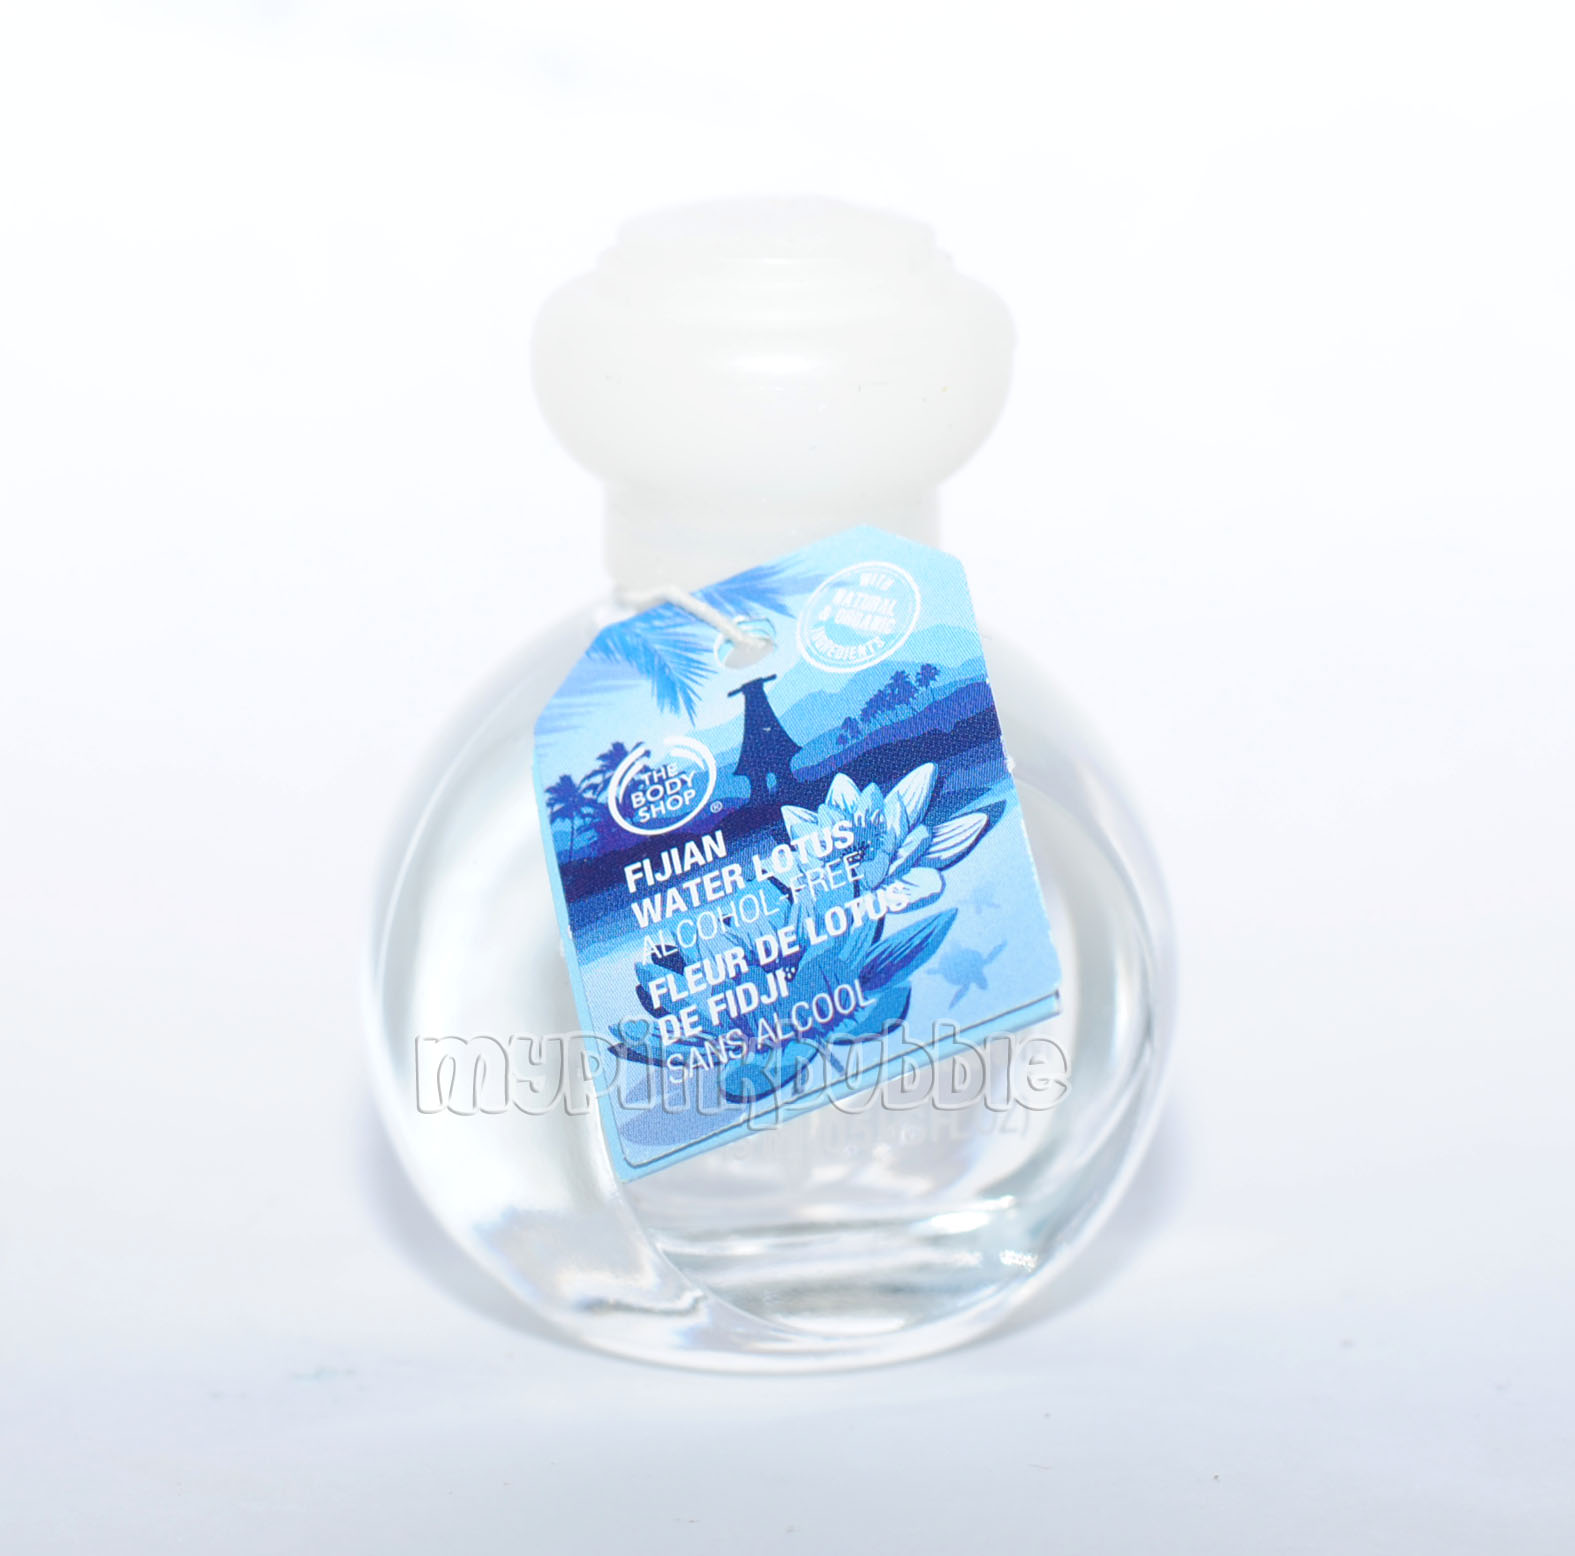 fijian water lotus perfume oil